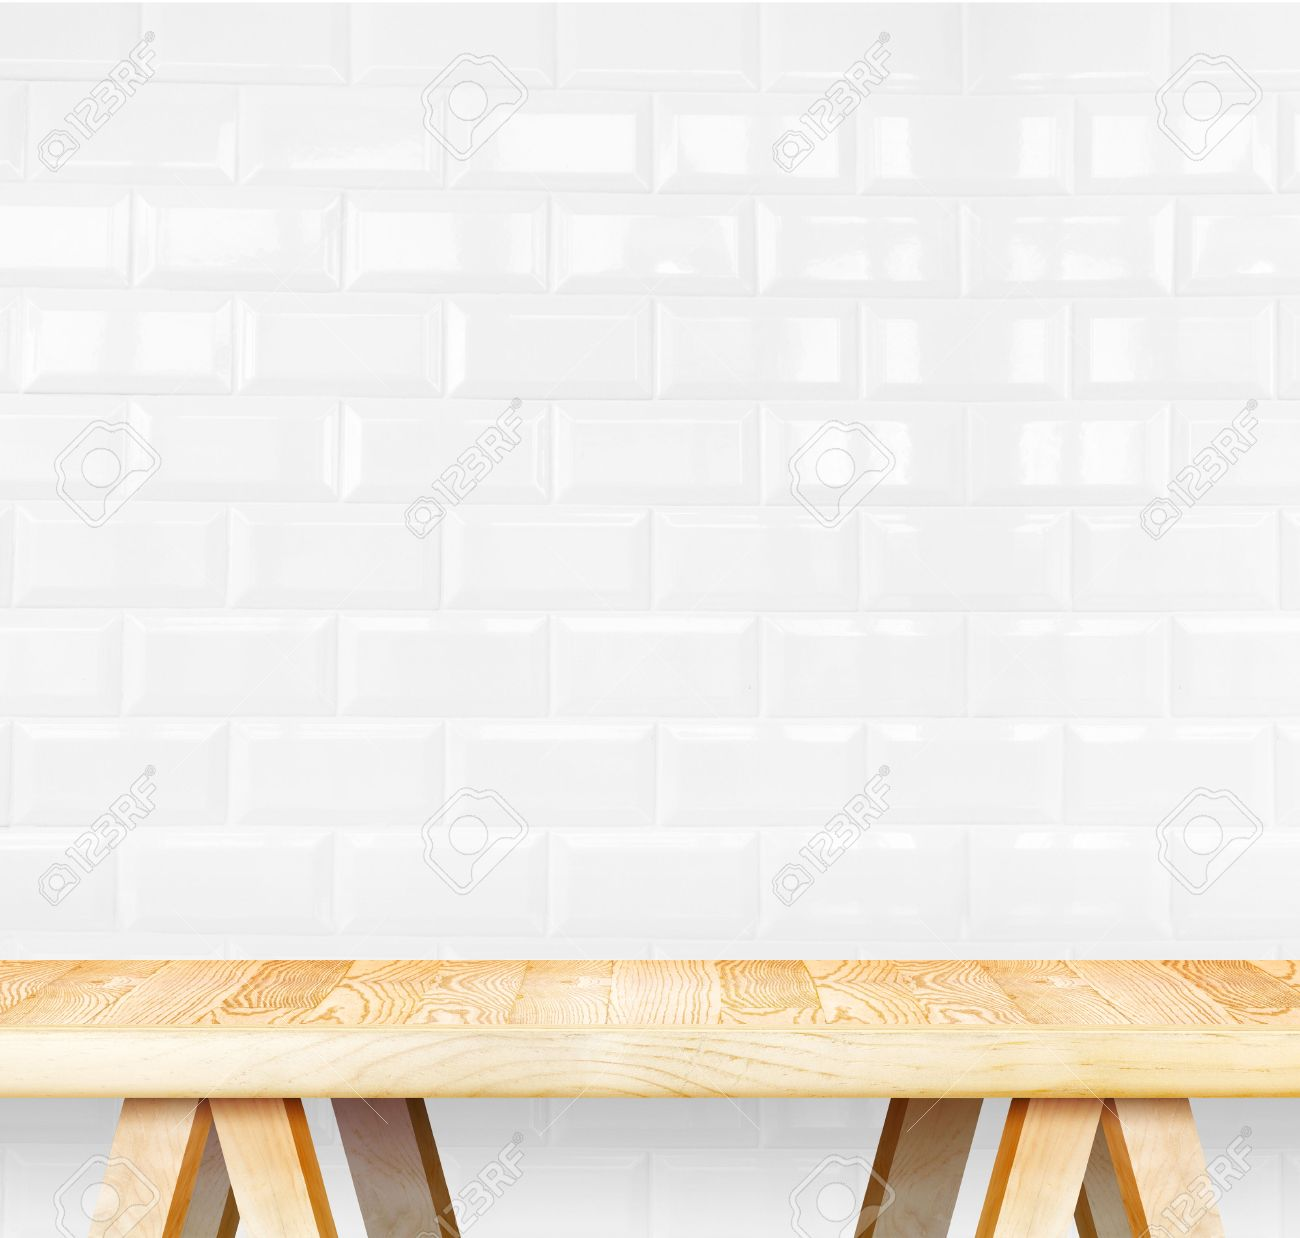 Empty Wood Modern Table And White Ceramic Tile Wall In Background